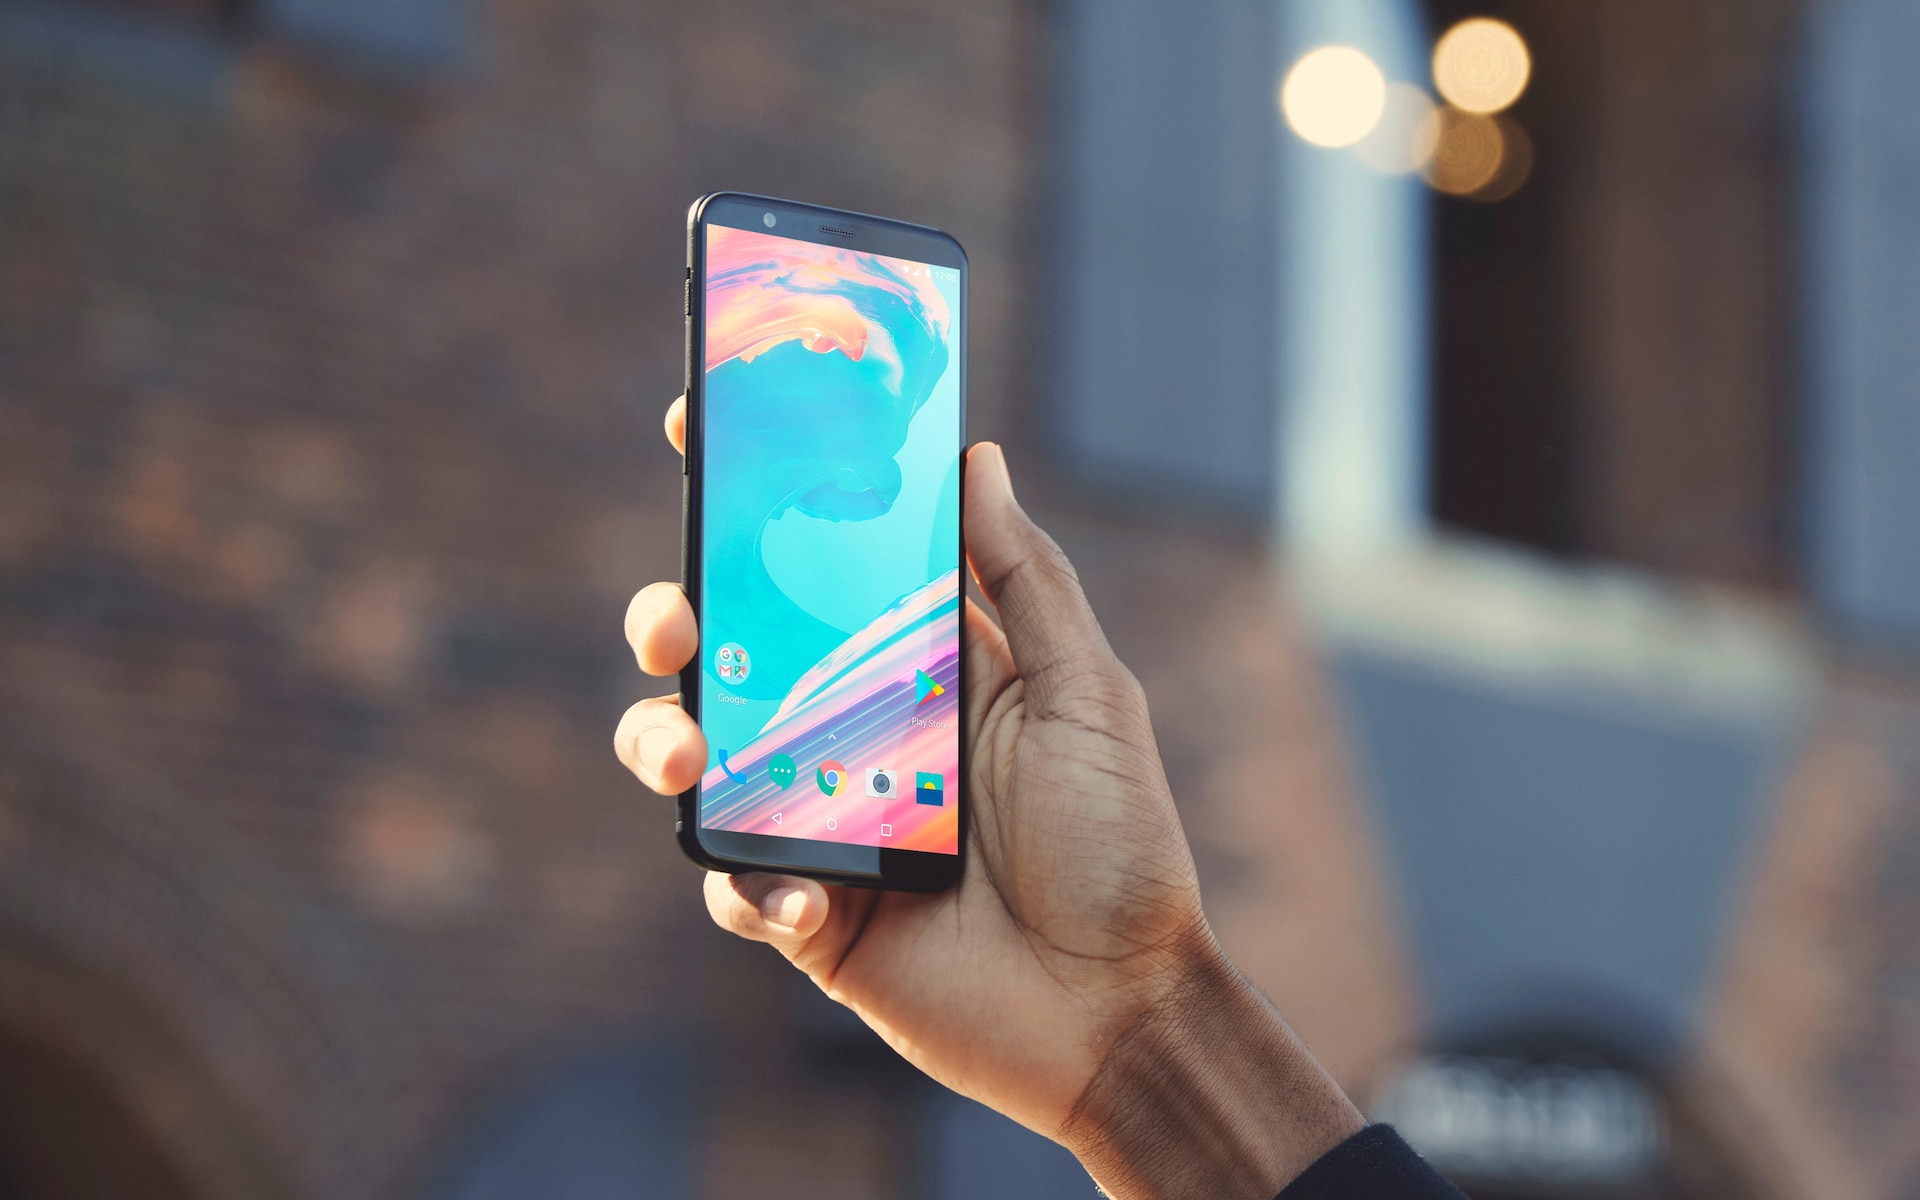 OnePlus 5T: New flagship has bigger screen and facial recognition